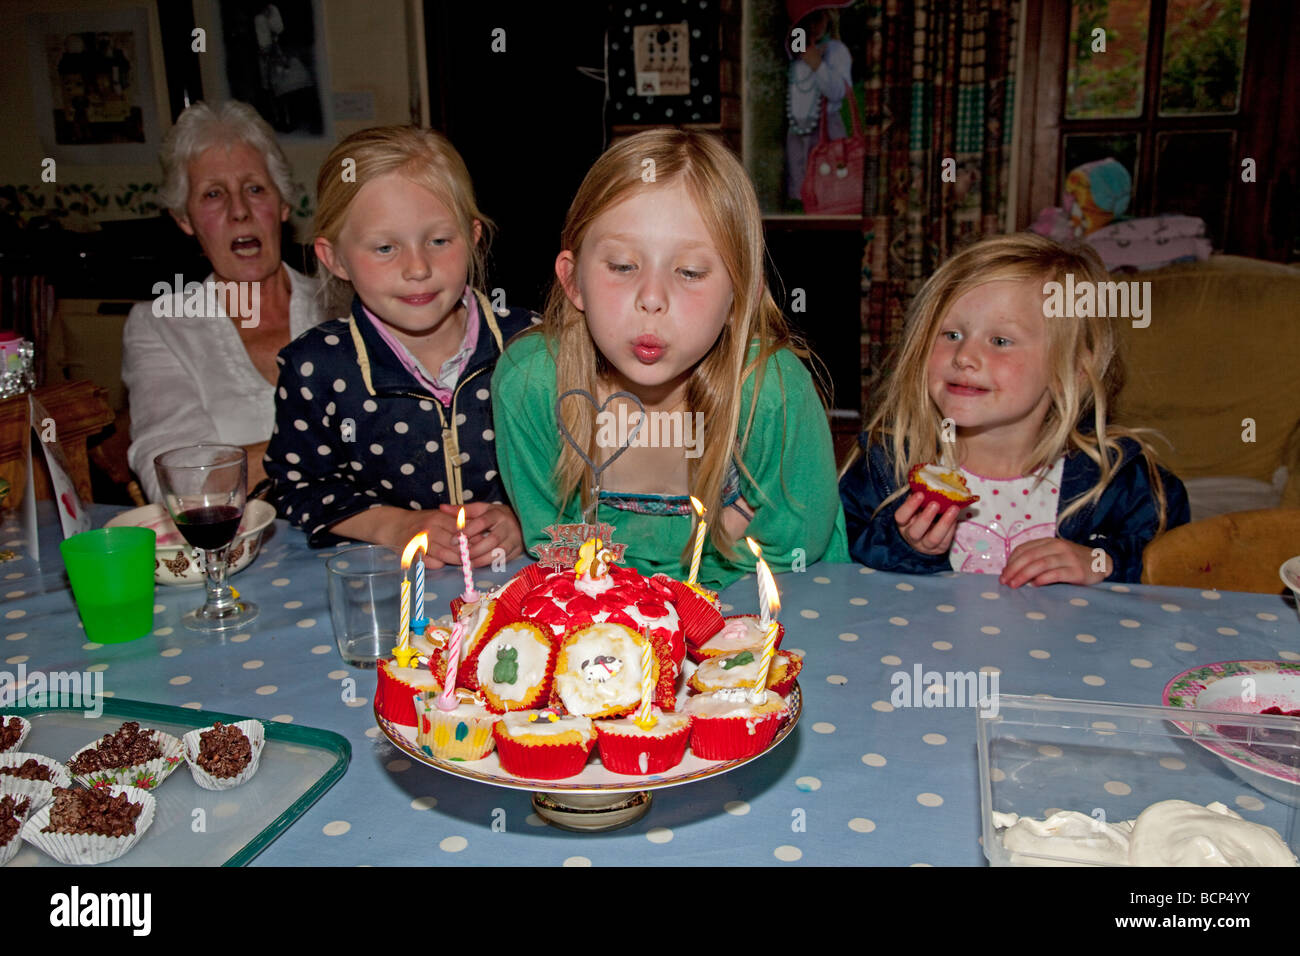 Nine Year Old Girl Blowing Out Candles On Birthday Cake